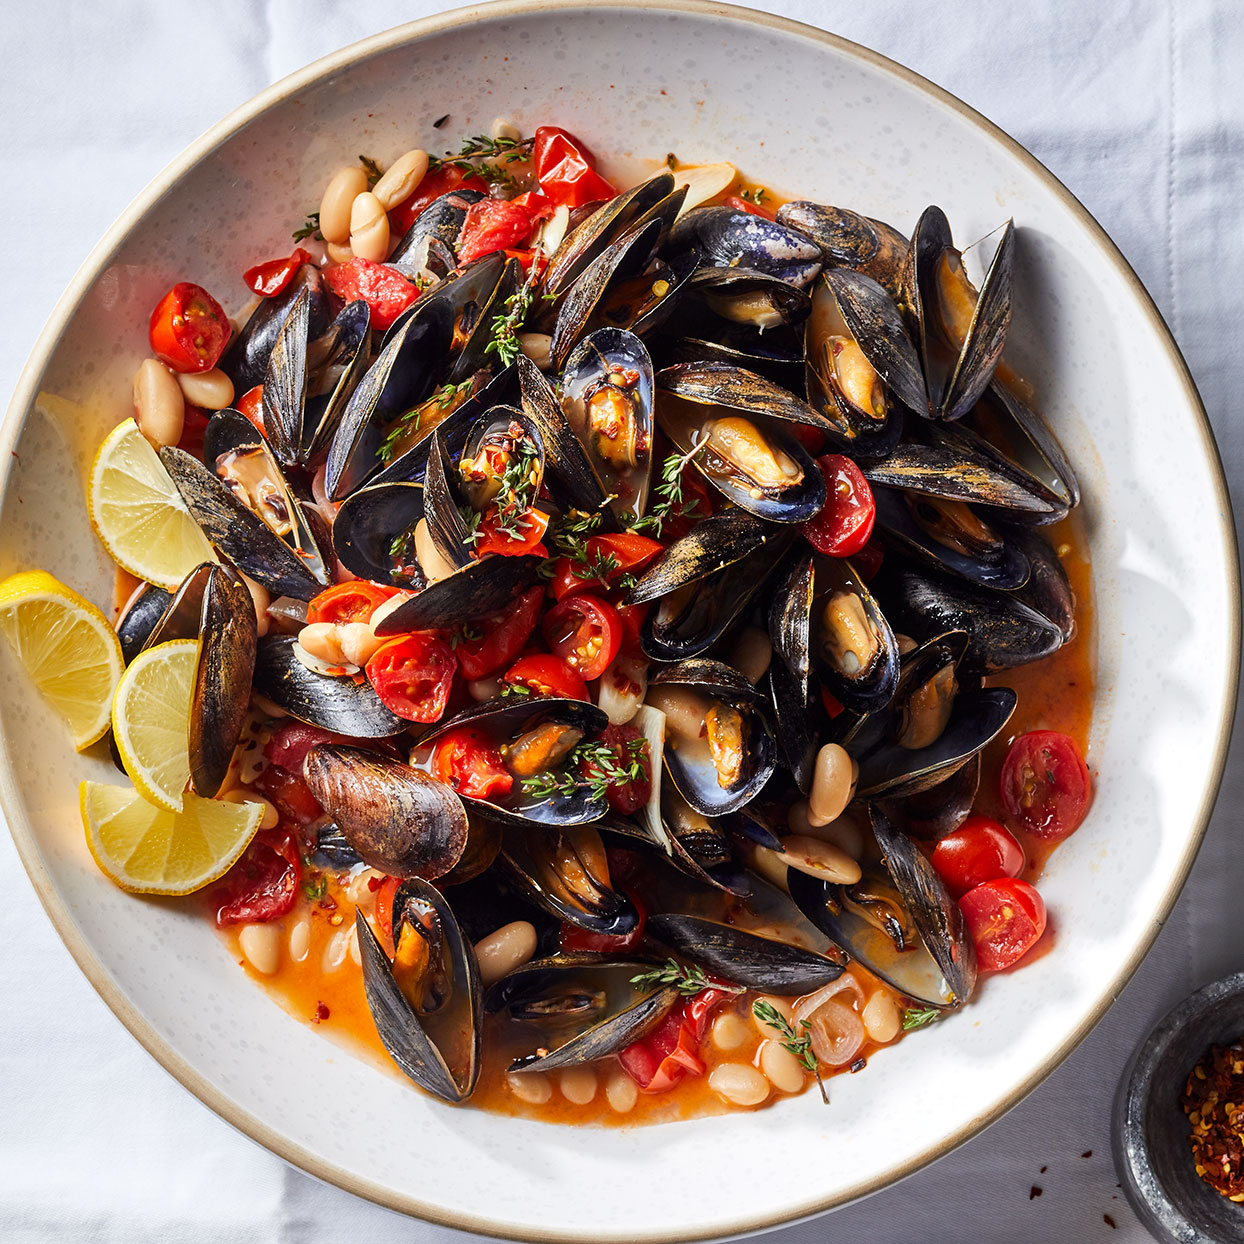 Cooking mussels may seem intimidating, but here we've made it quick and easy. We've added white beans to turn this classic mussels-in-white-wine-sauce dish into a heartier weeknight meal. Serve with whole-grain crusty bread to sop up the flavorful broth.